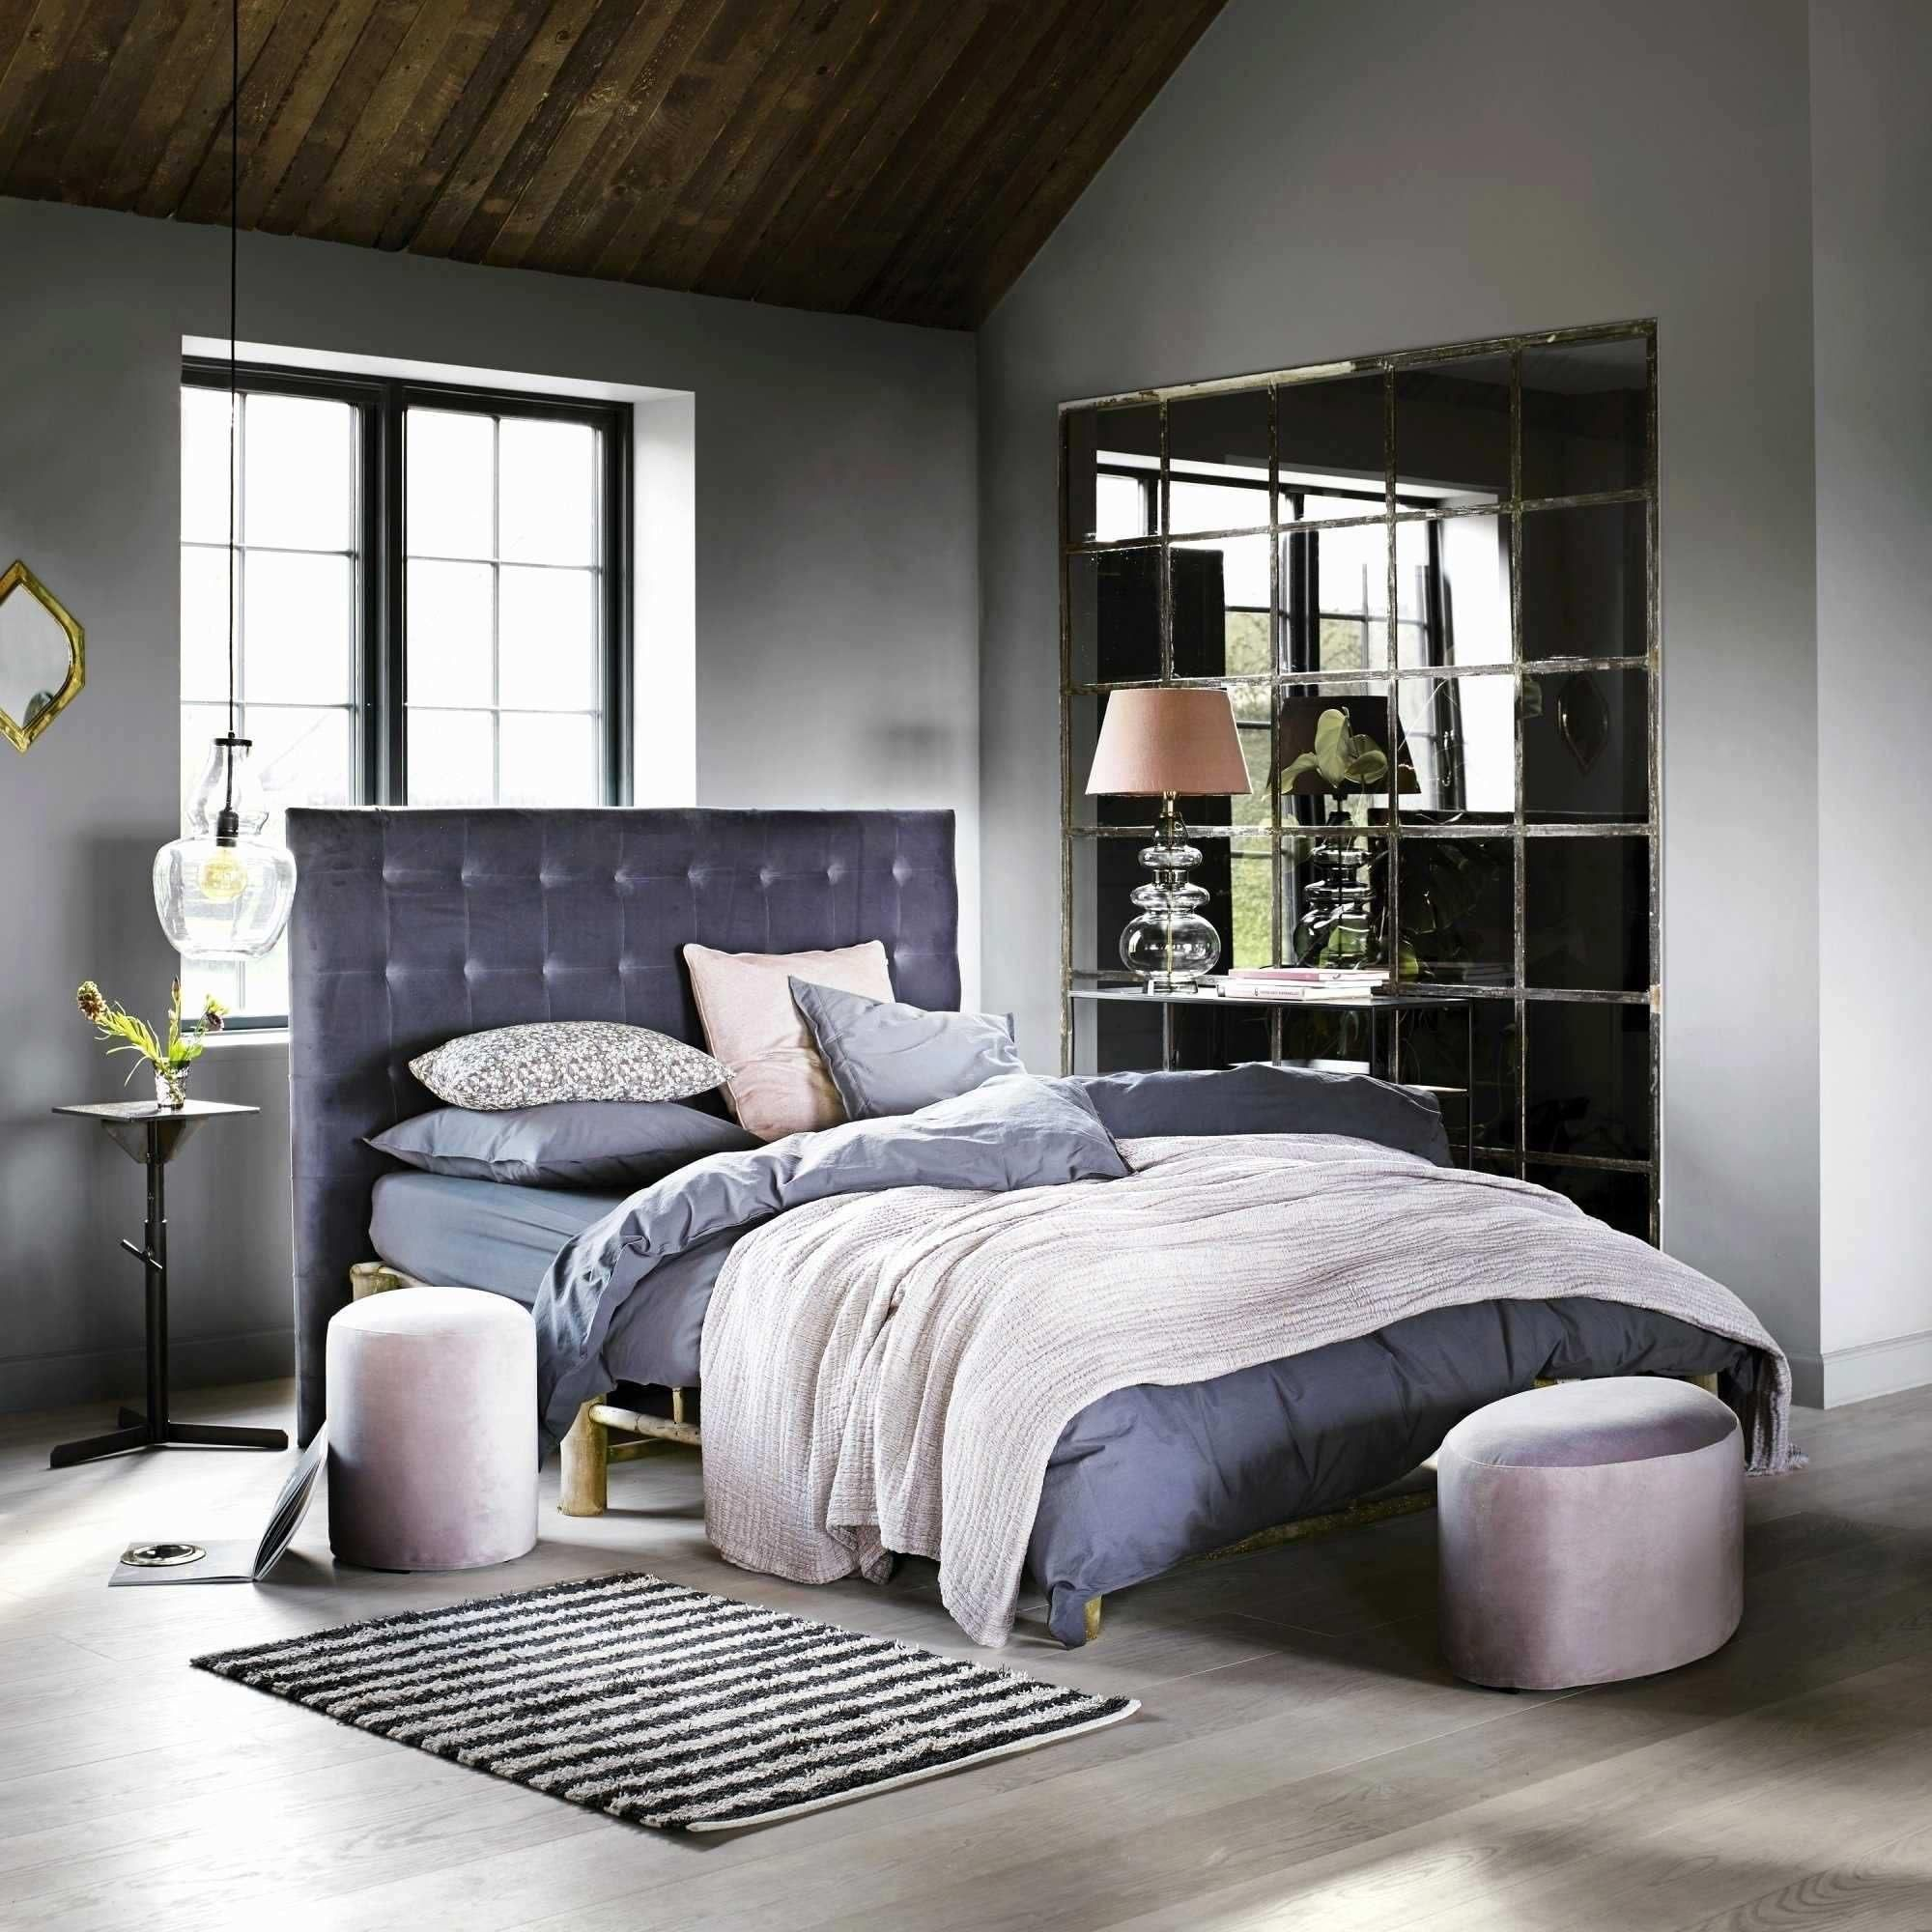 Idee Deco Chambre Claire awesome deco chambre homme that you must know, you're in